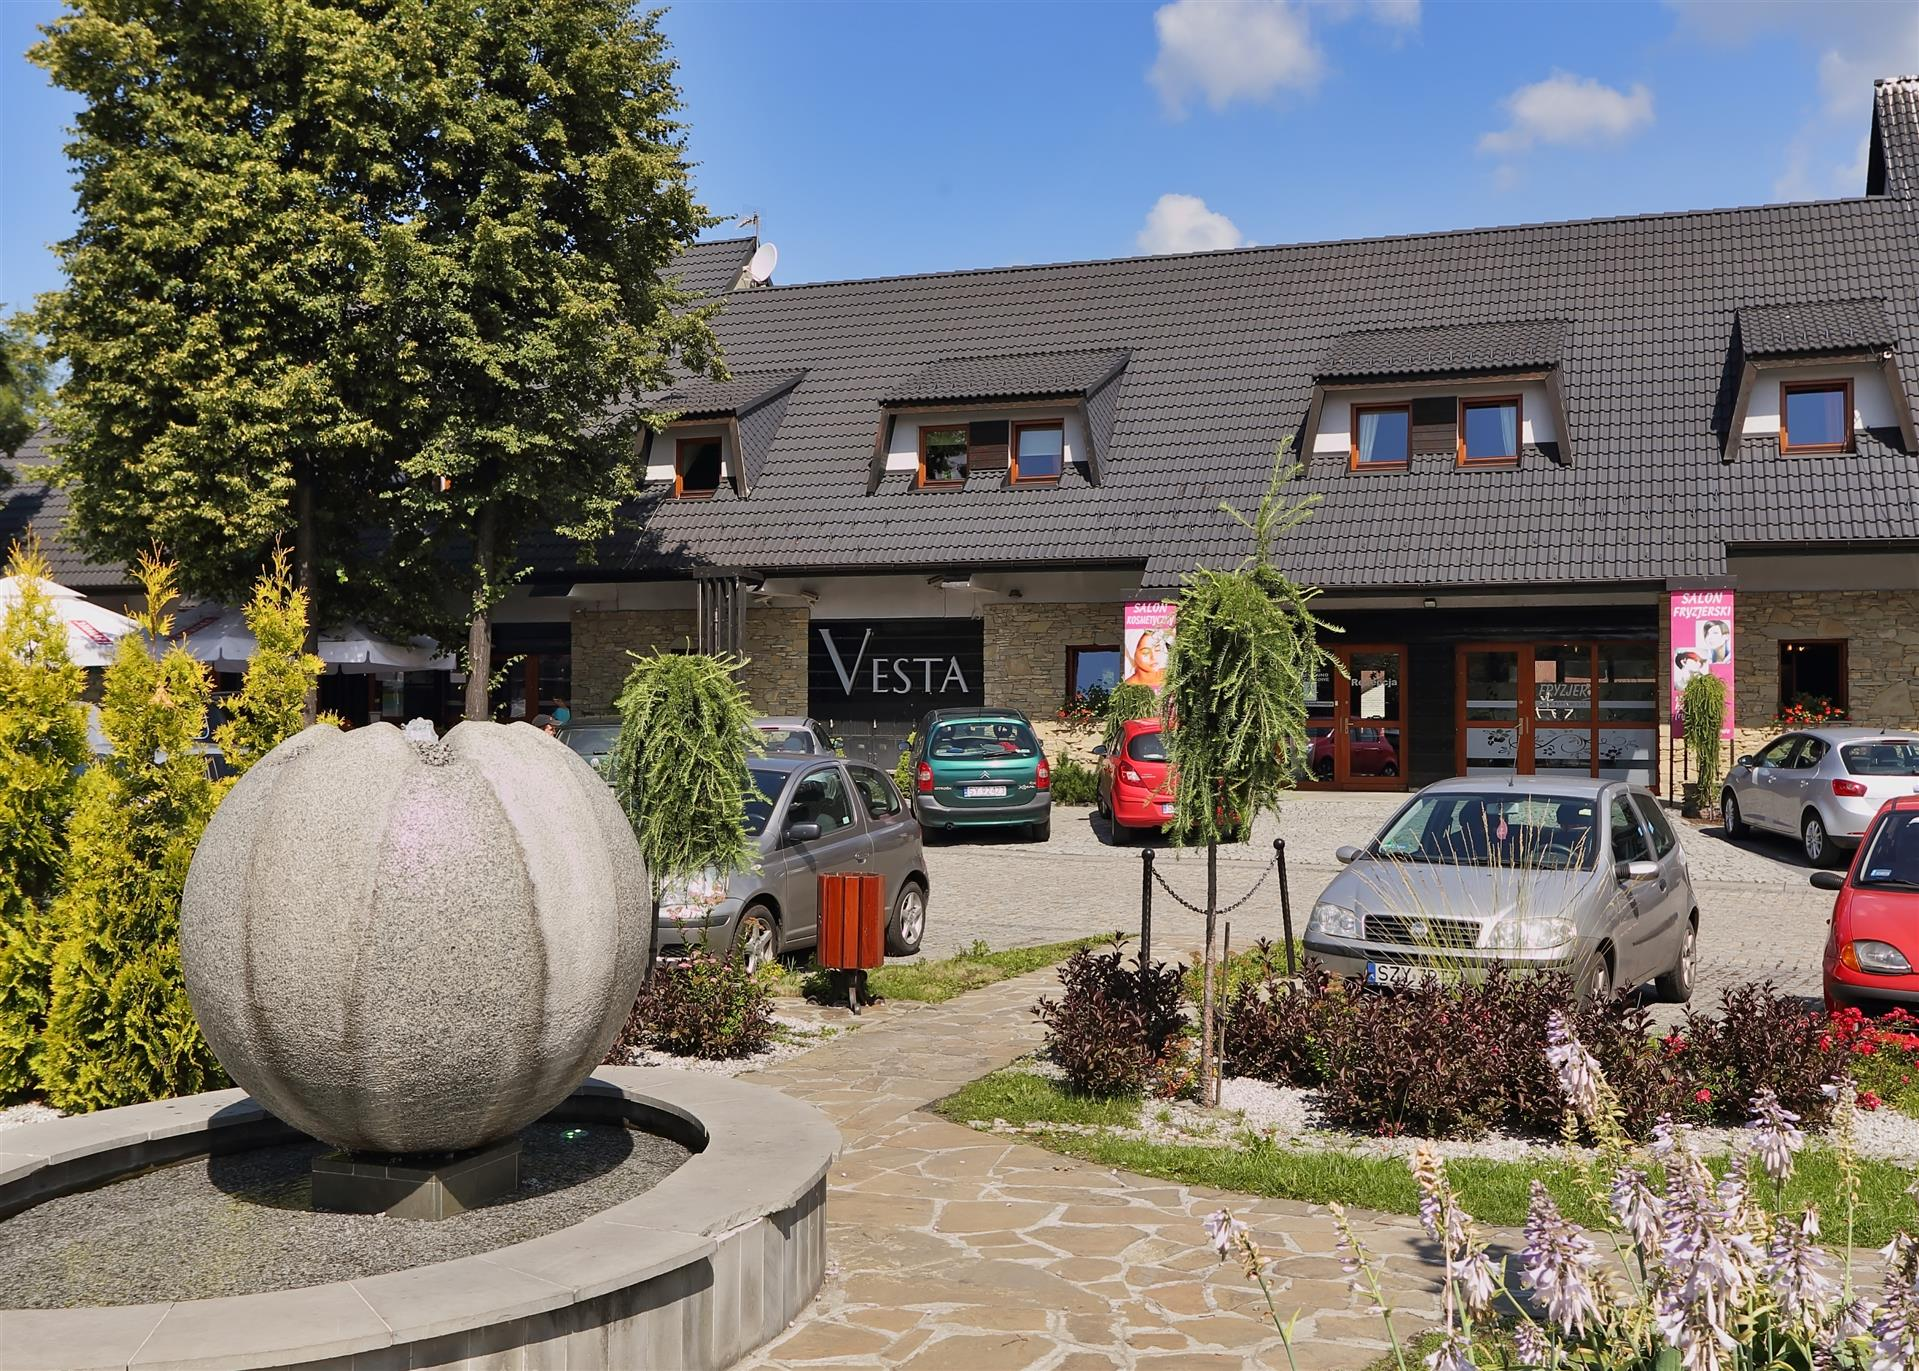 Vesta Hotel Conference And Recreation Center Silesia